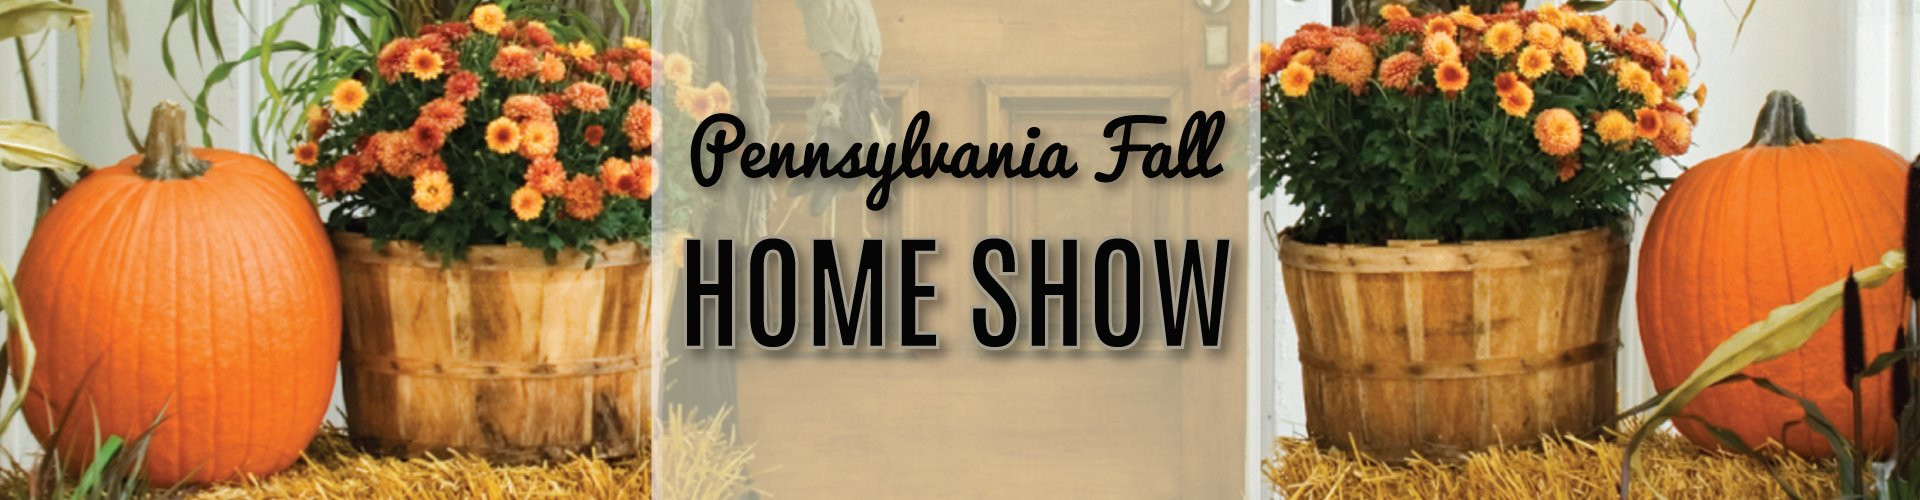 lehigh valley hardwood flooring allentown pa of 2018 eastern pa fall home show lehigh valley home expo jenks pertaining to 2018 eastern pa fall home show expo